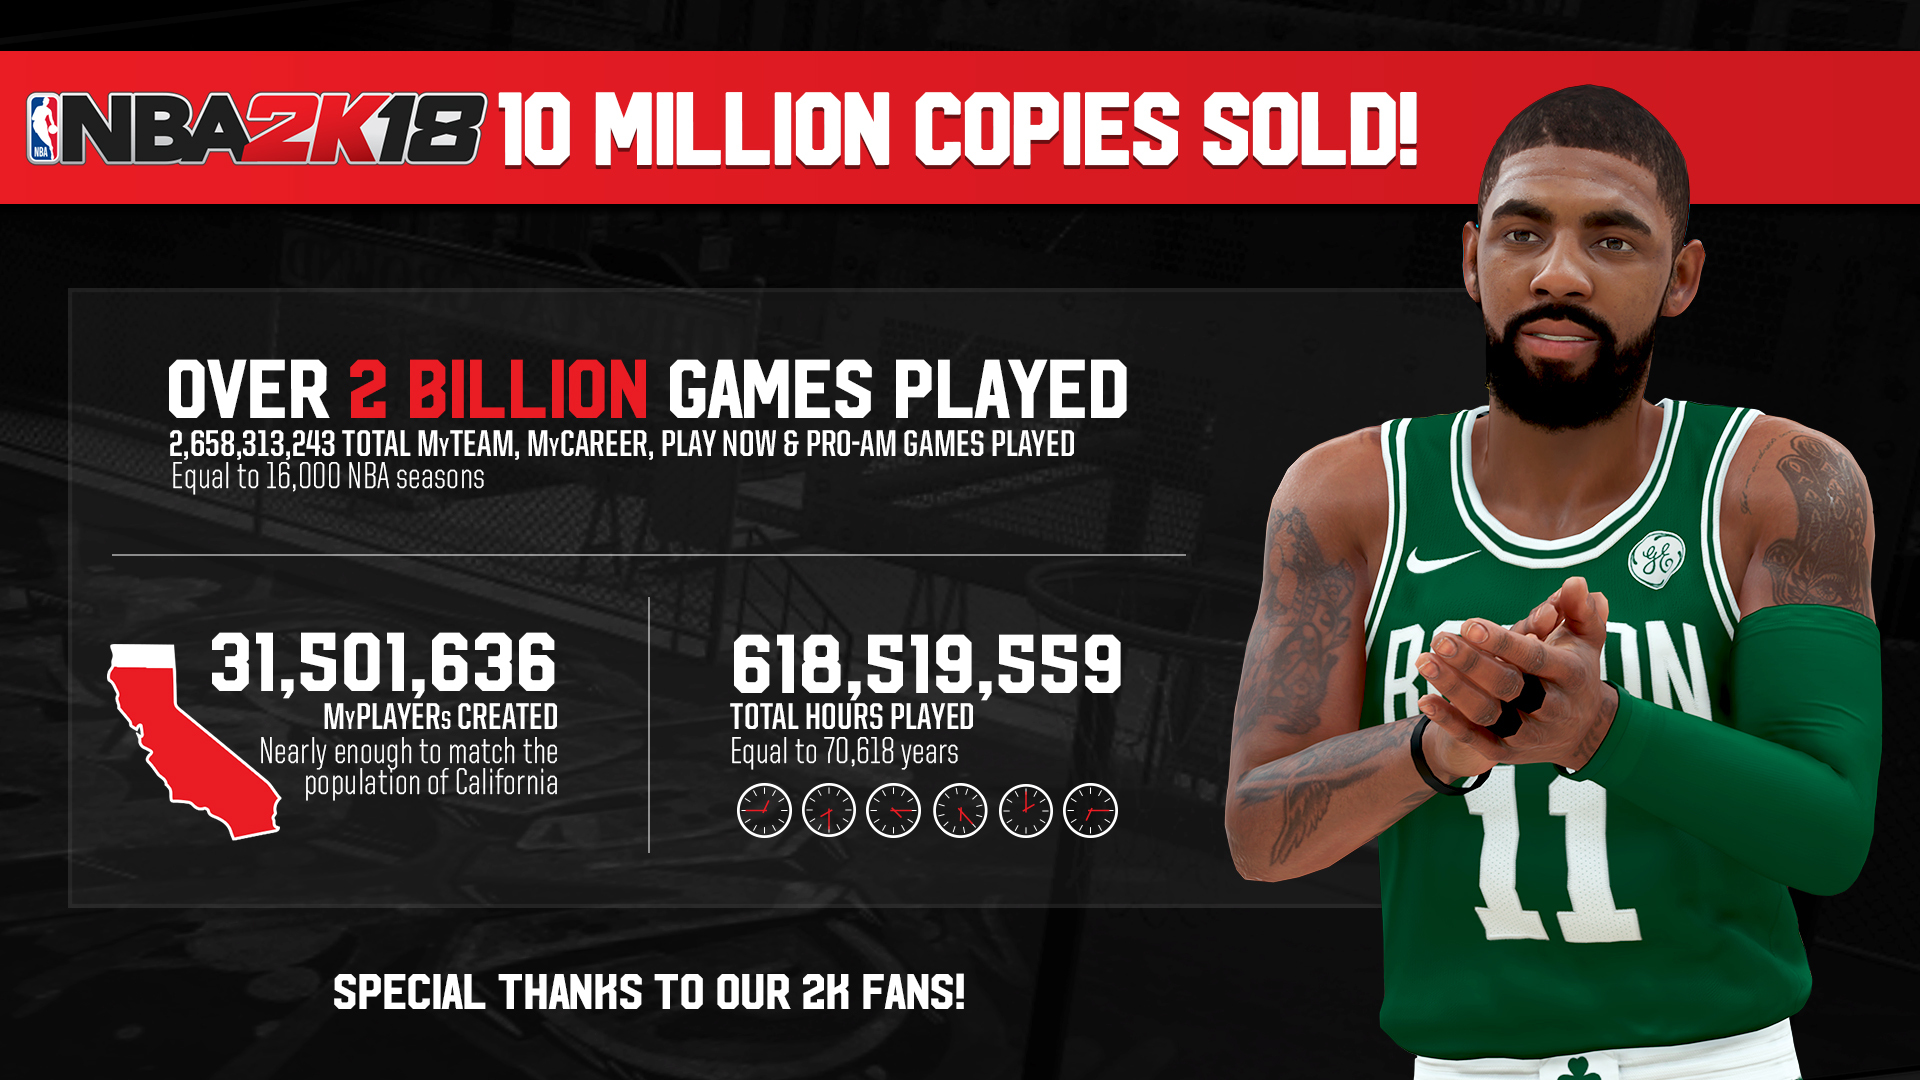 nba 2k18 hits franchise sales record business wire